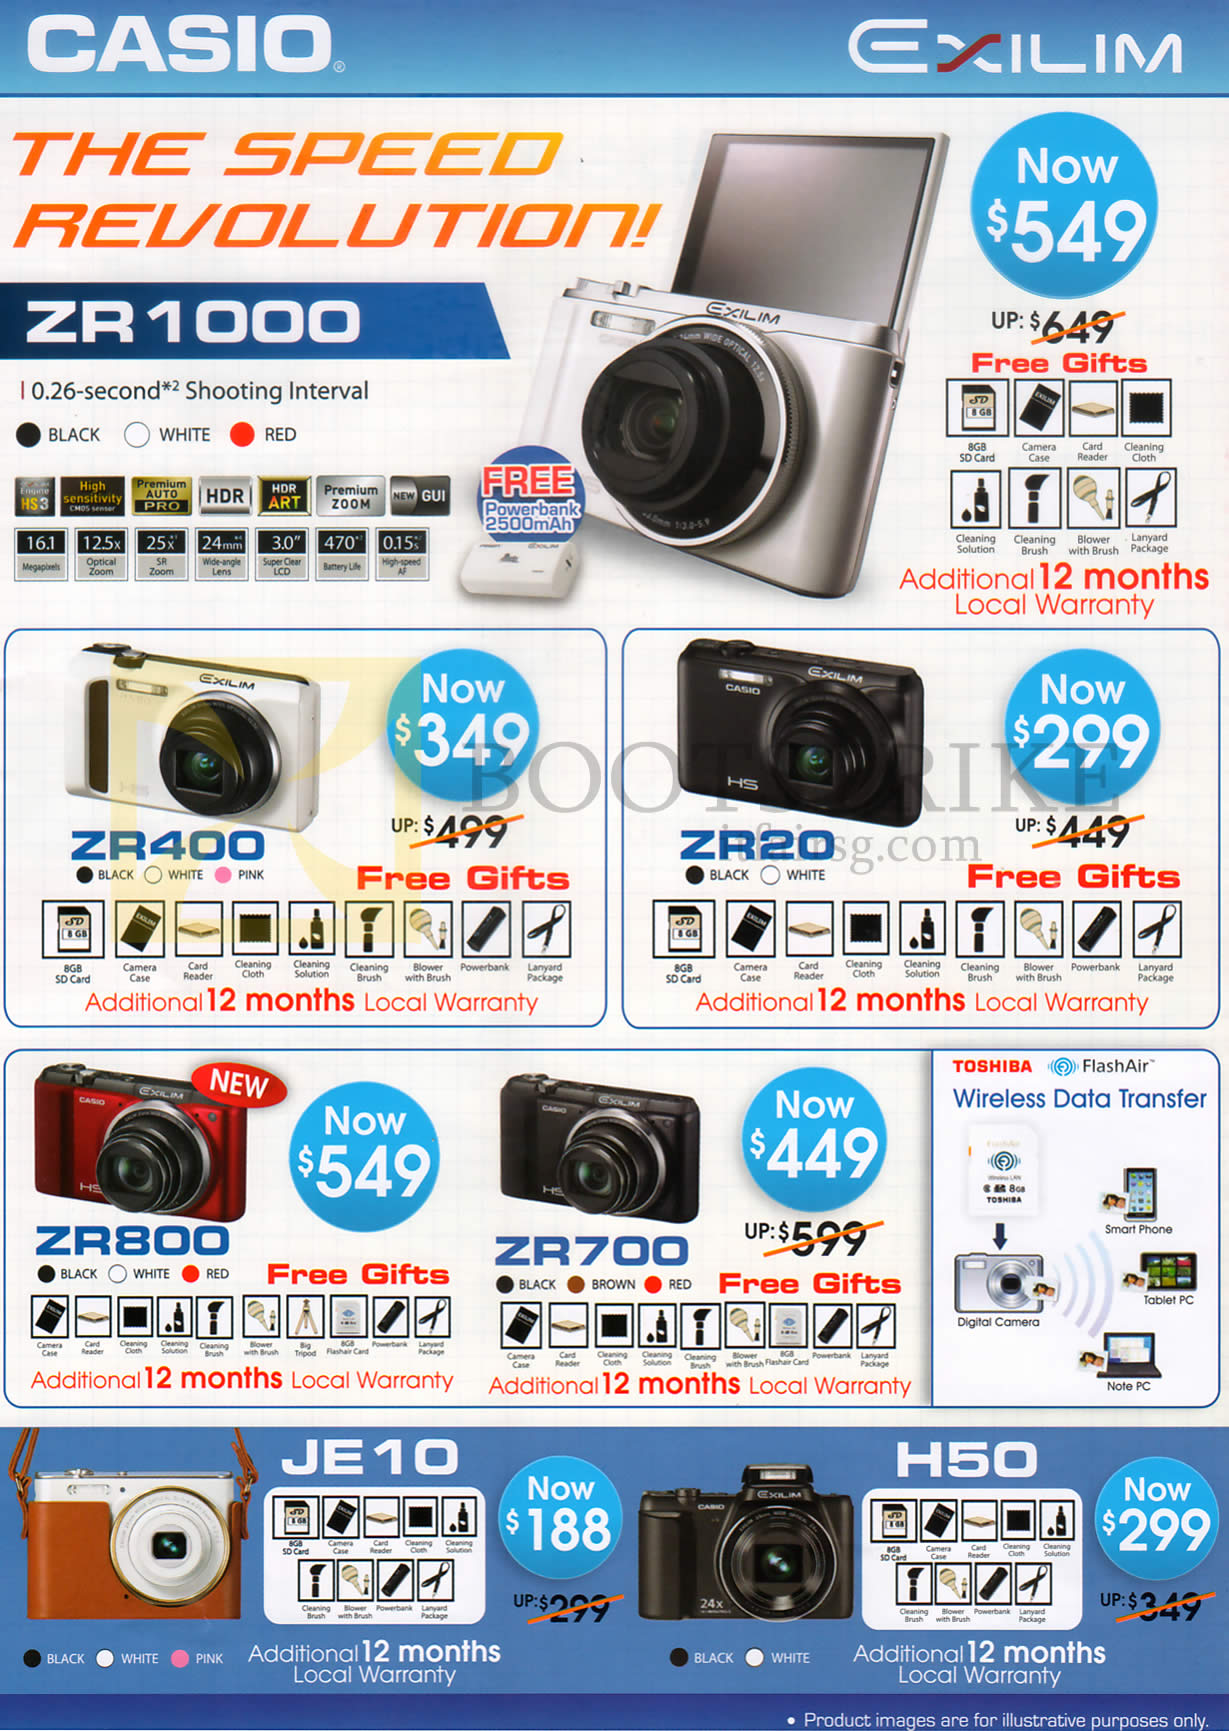 COMEX 2013 price list image brochure of Casio Digital Cameras Exilim ZR400, Z420, ZR1000, ZR800, ZR700, JE10, H50